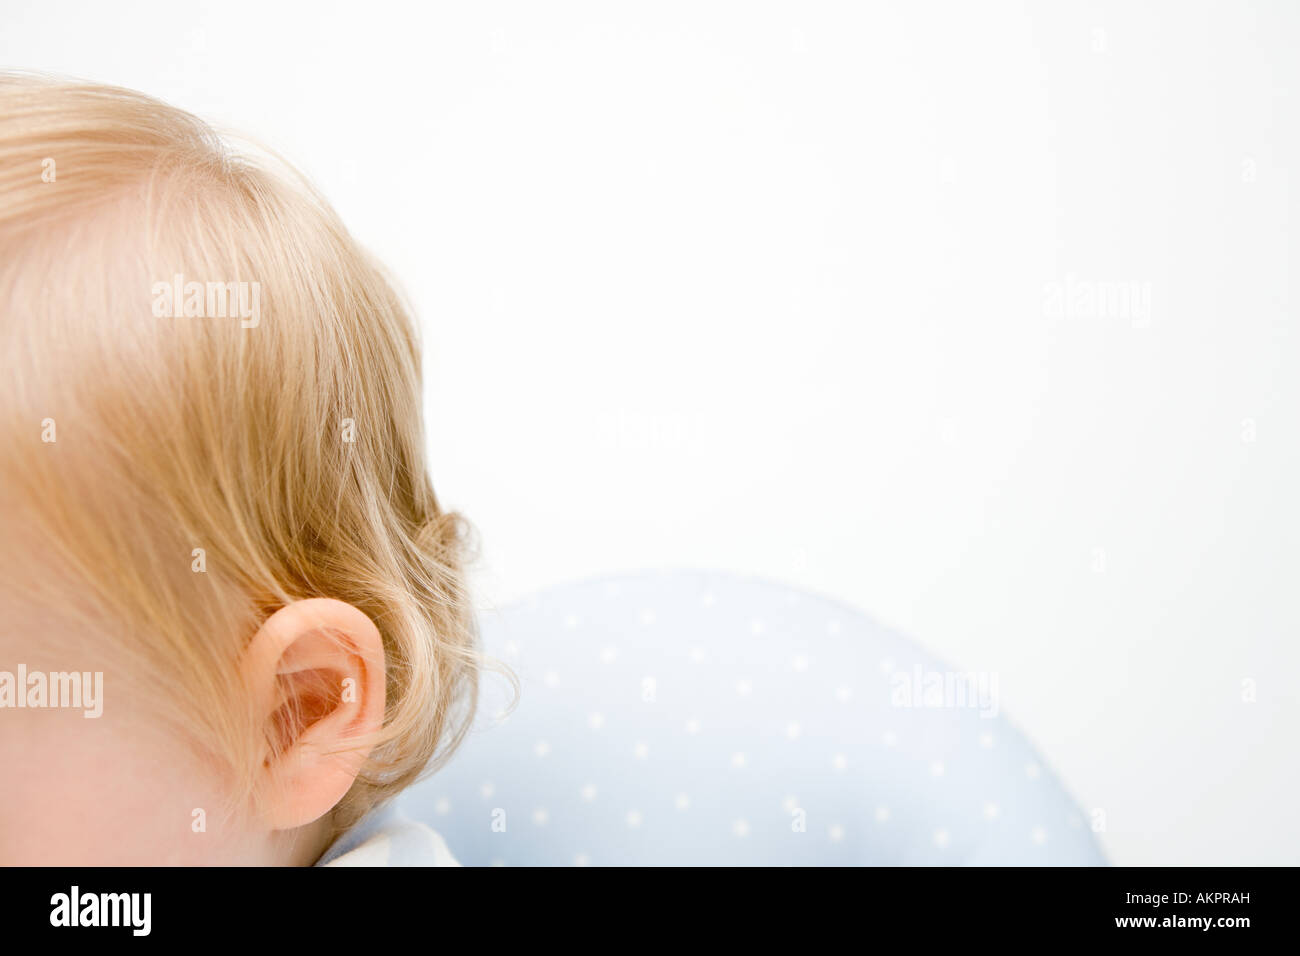 A babys head - Stock Image